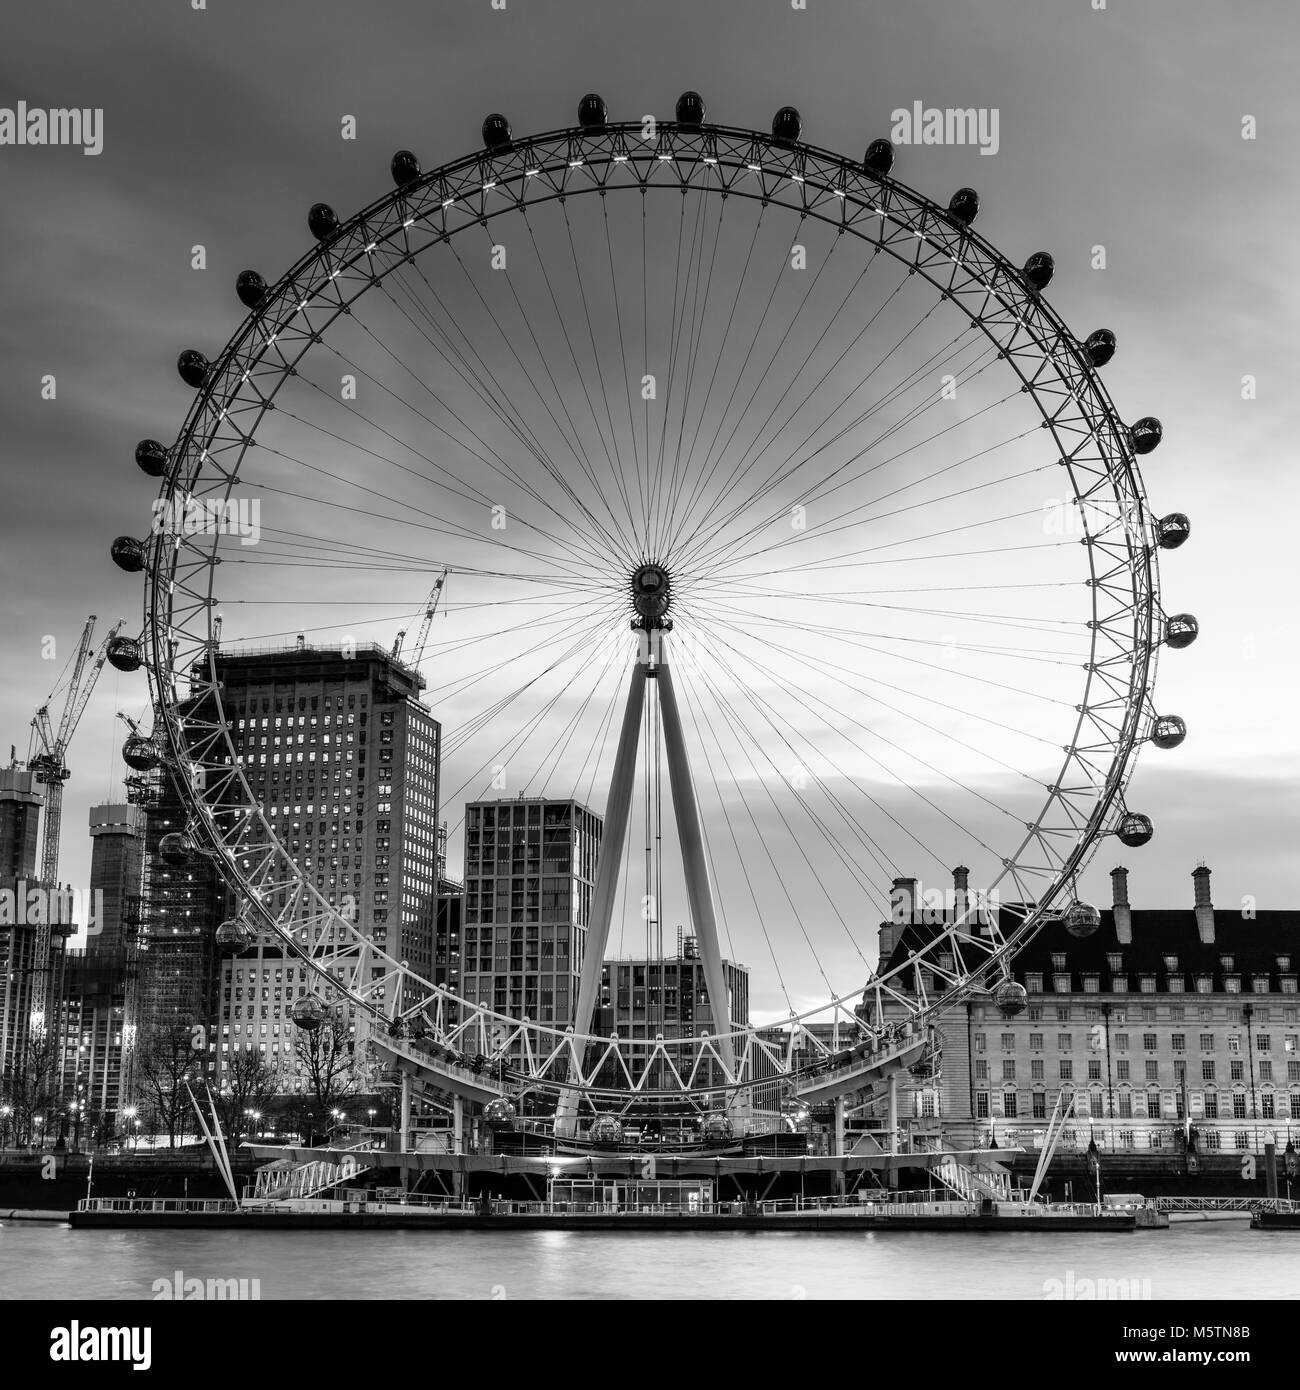 Black and White image of The London Eye and County Hall at dawn - Stock Image